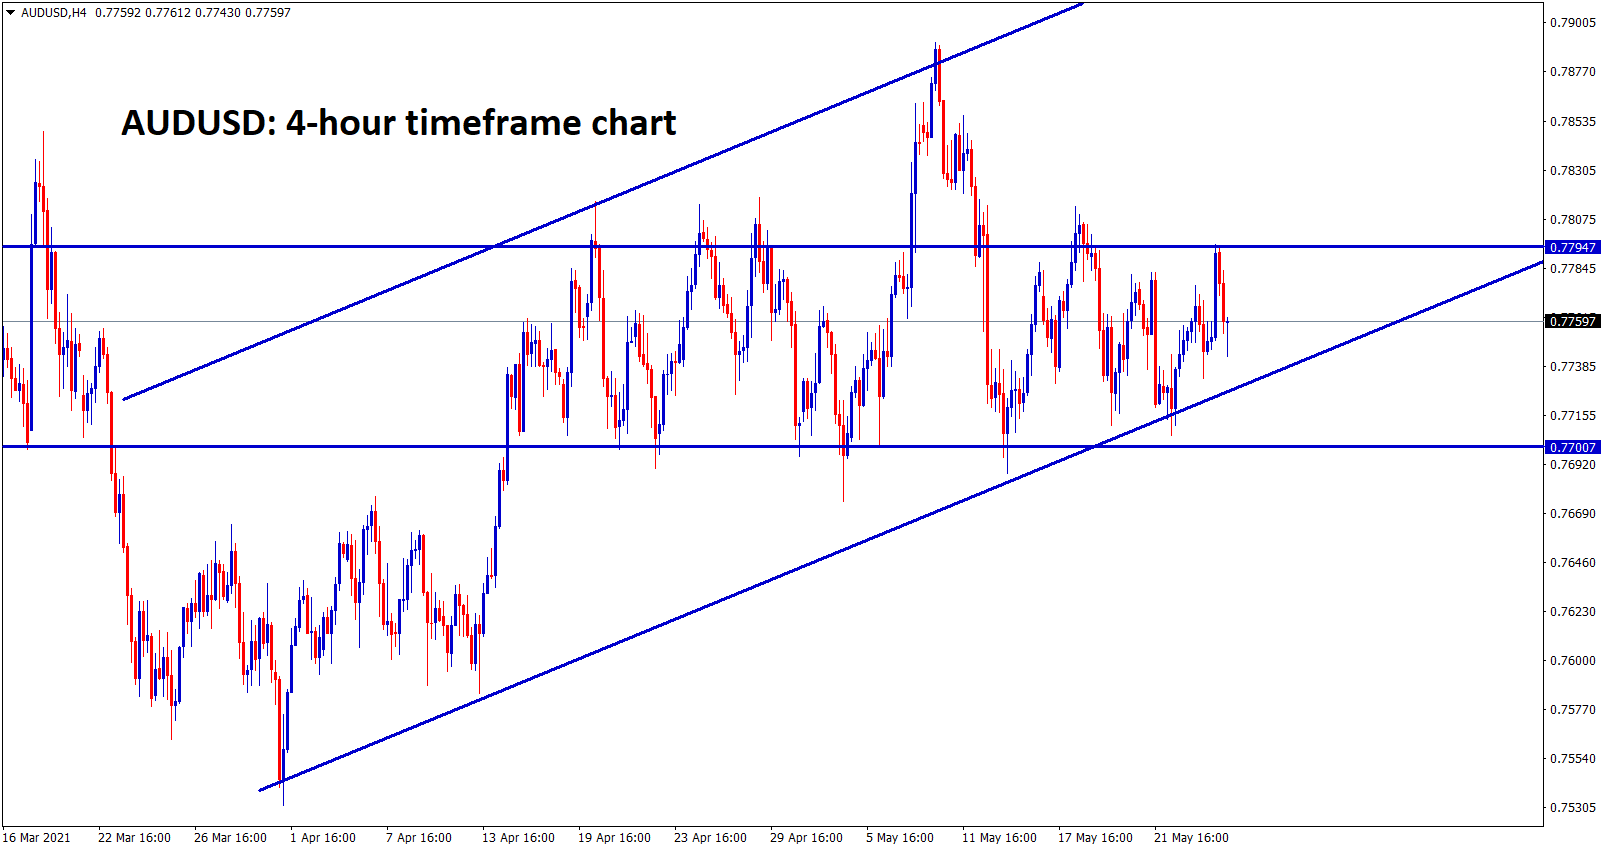 AUDUSD is moving up and down between the ranges for a long time